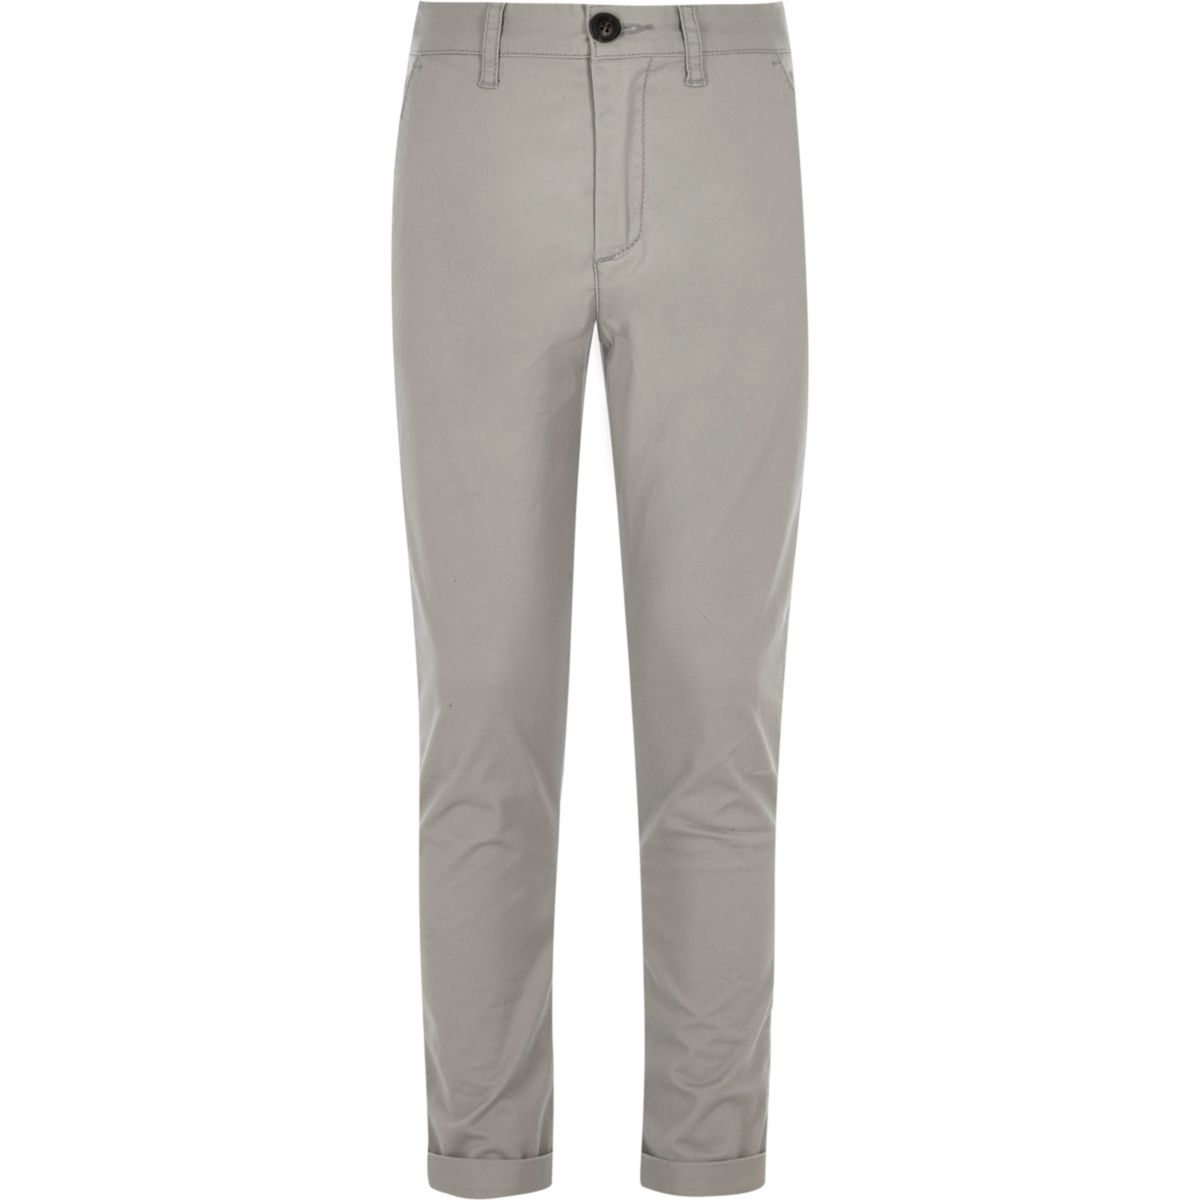 Boys grey Sid skinny fit chino trousers